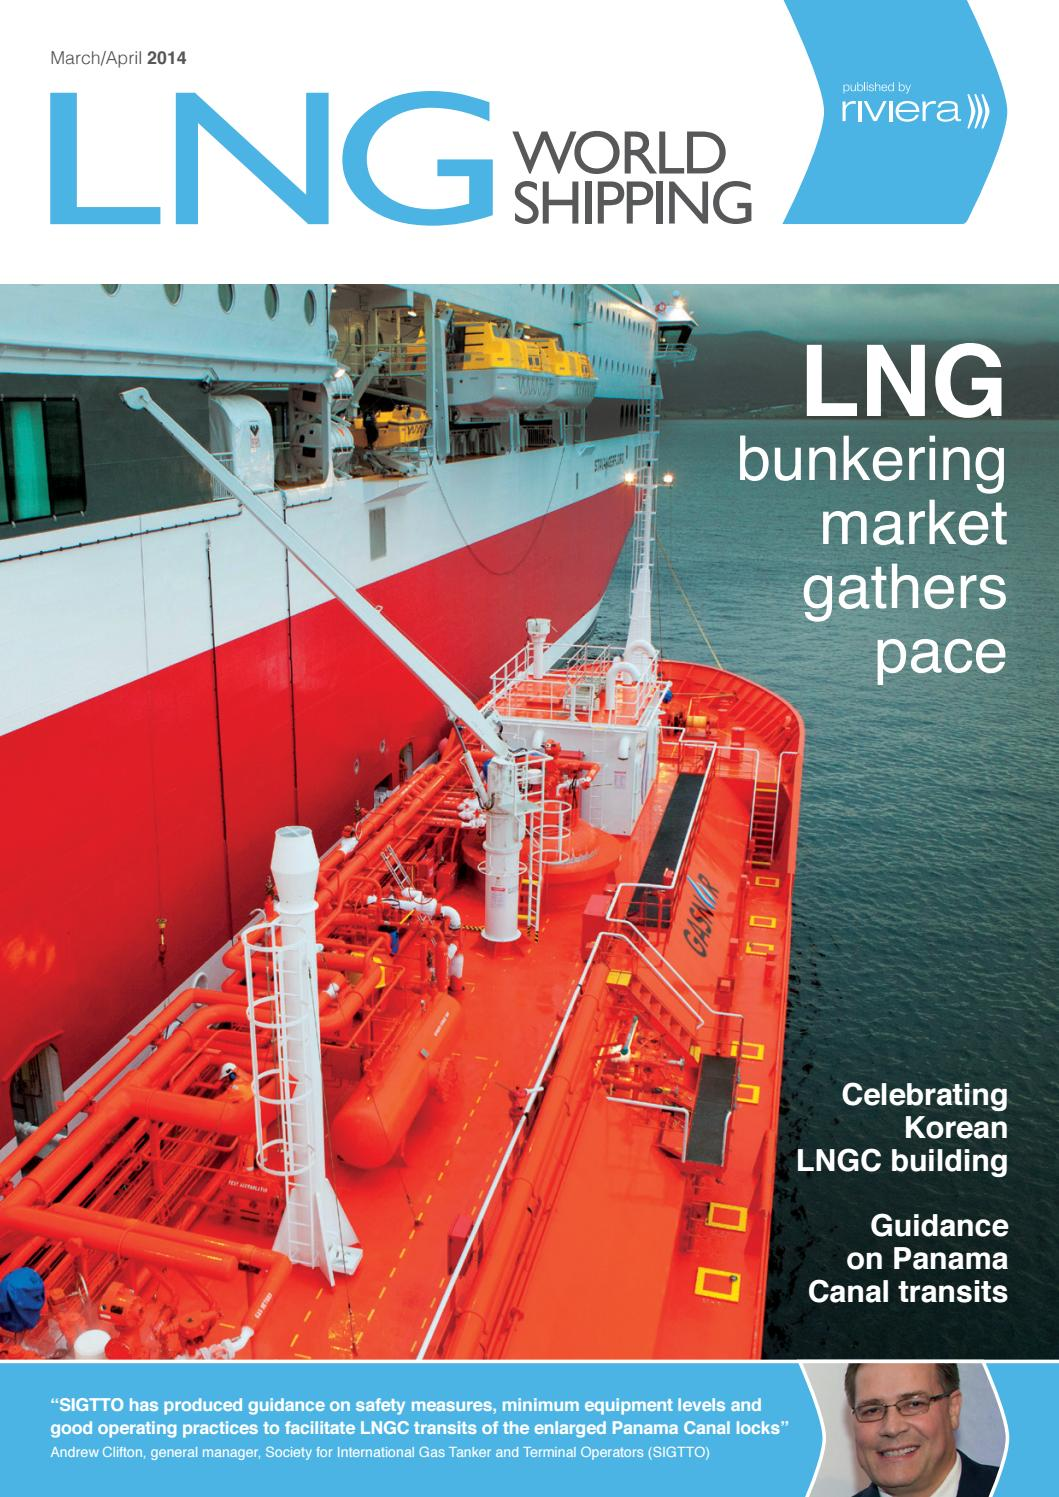 Sigtto manual array lng world shipping march april 2014 by rivieramaritimemedia issuu rh issuu fandeluxe Choice Image